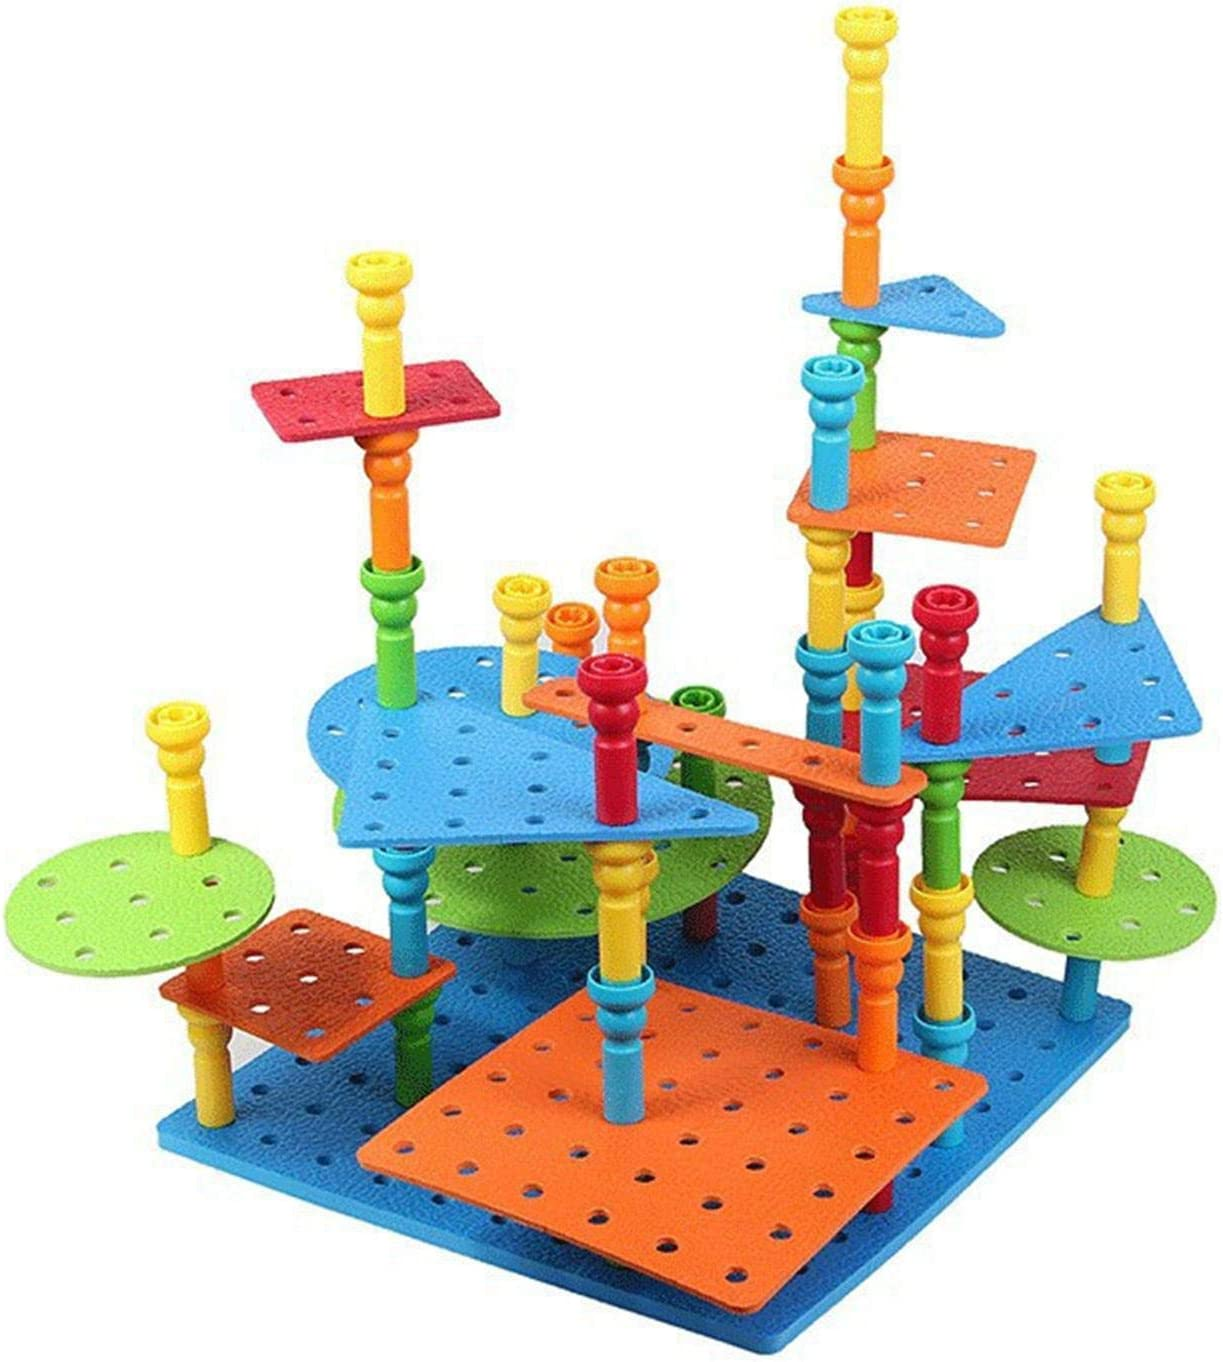 FEBUD Pegboard Game Peg Board Set Toy Max 58% OFF Stacking OFFer Mon